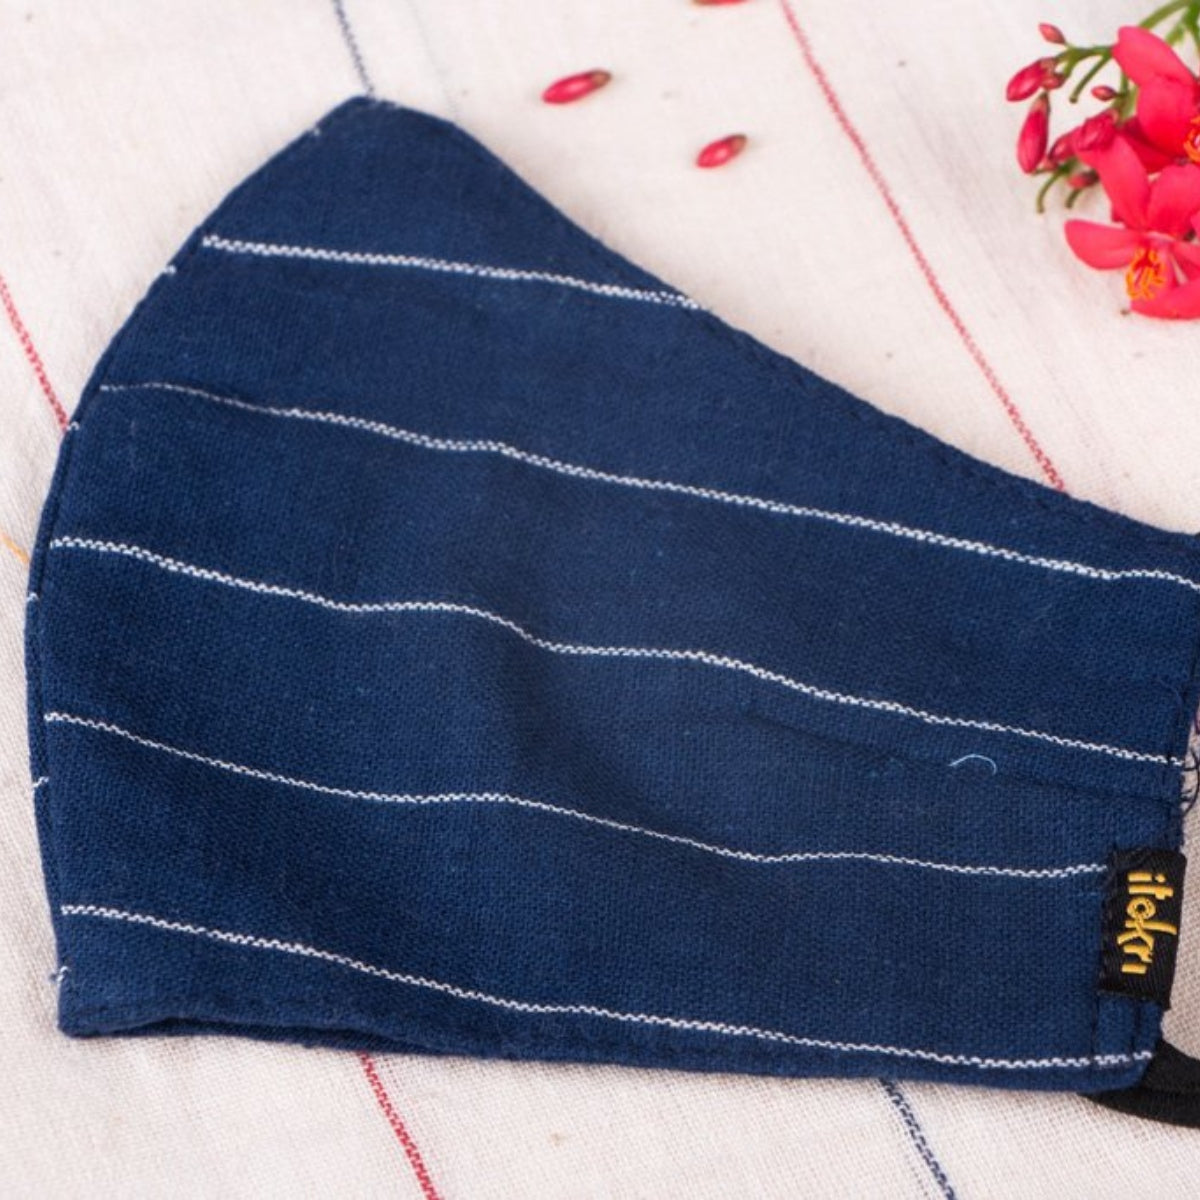 Organic Kala Cotton Pure Handloom Fabric Snug Fit Face Covers